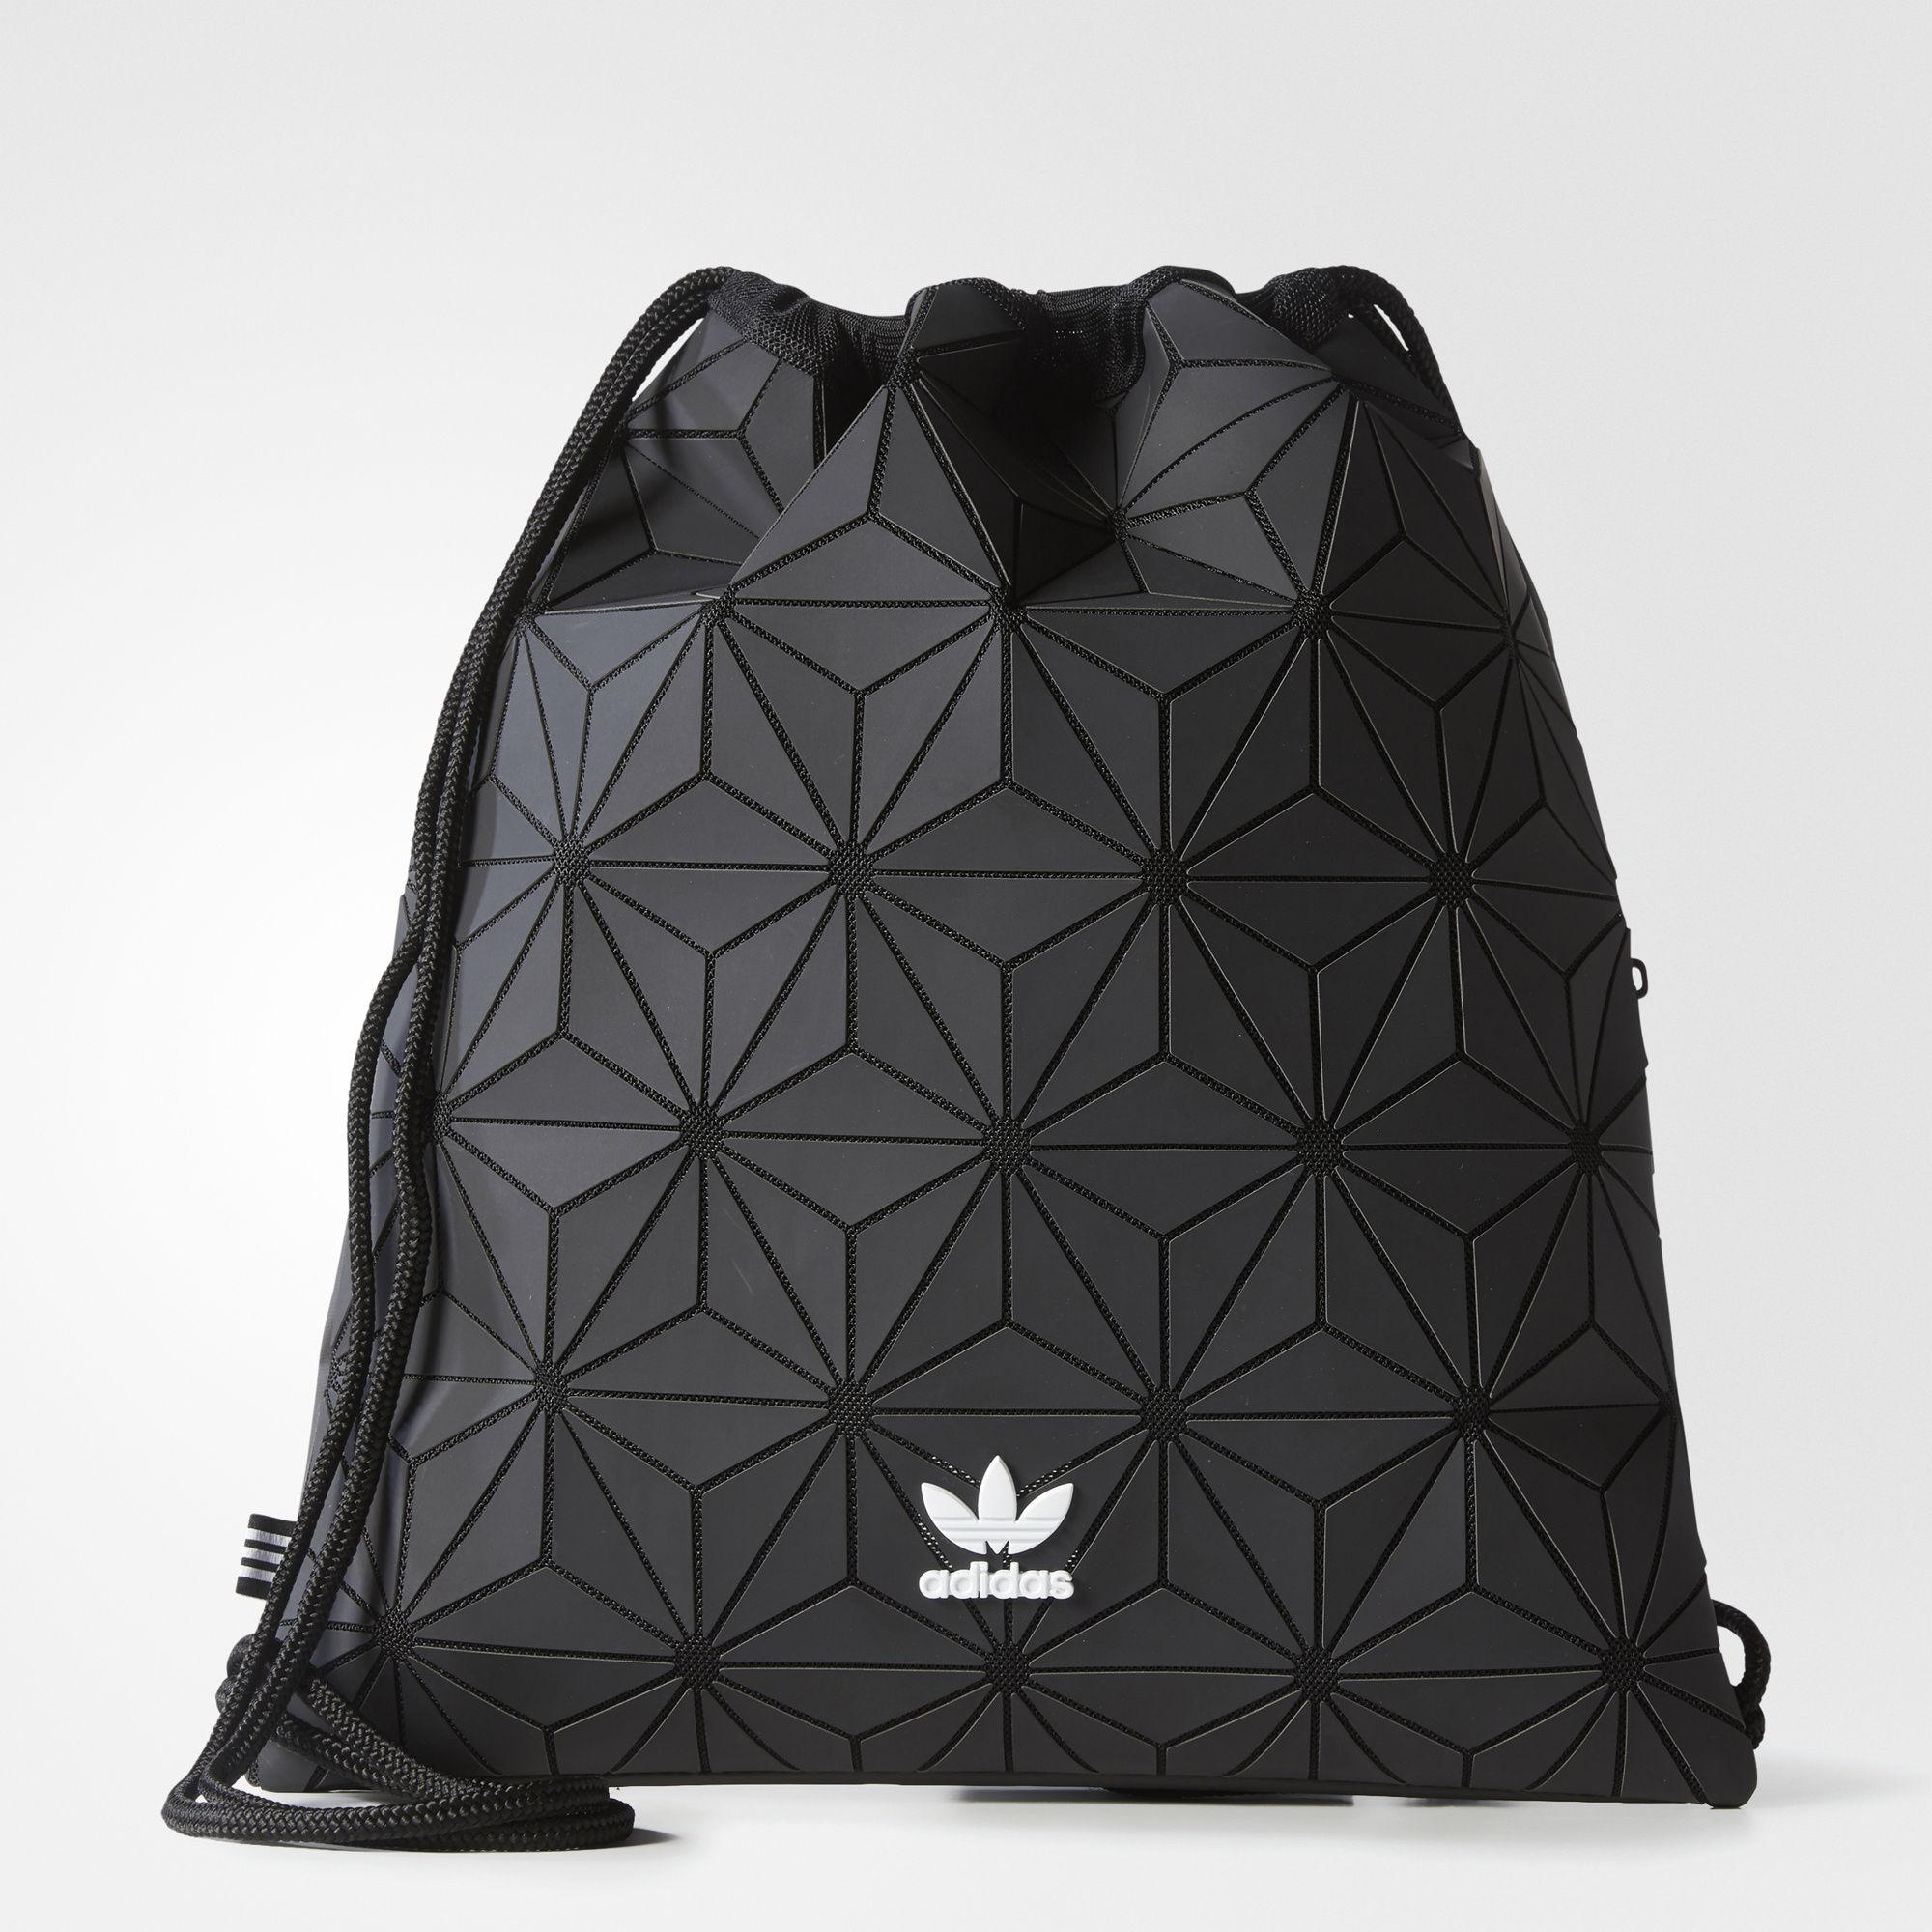 def7823127 Adidas X Issey Miyake in E-Comm - BigGo Price Search Engine